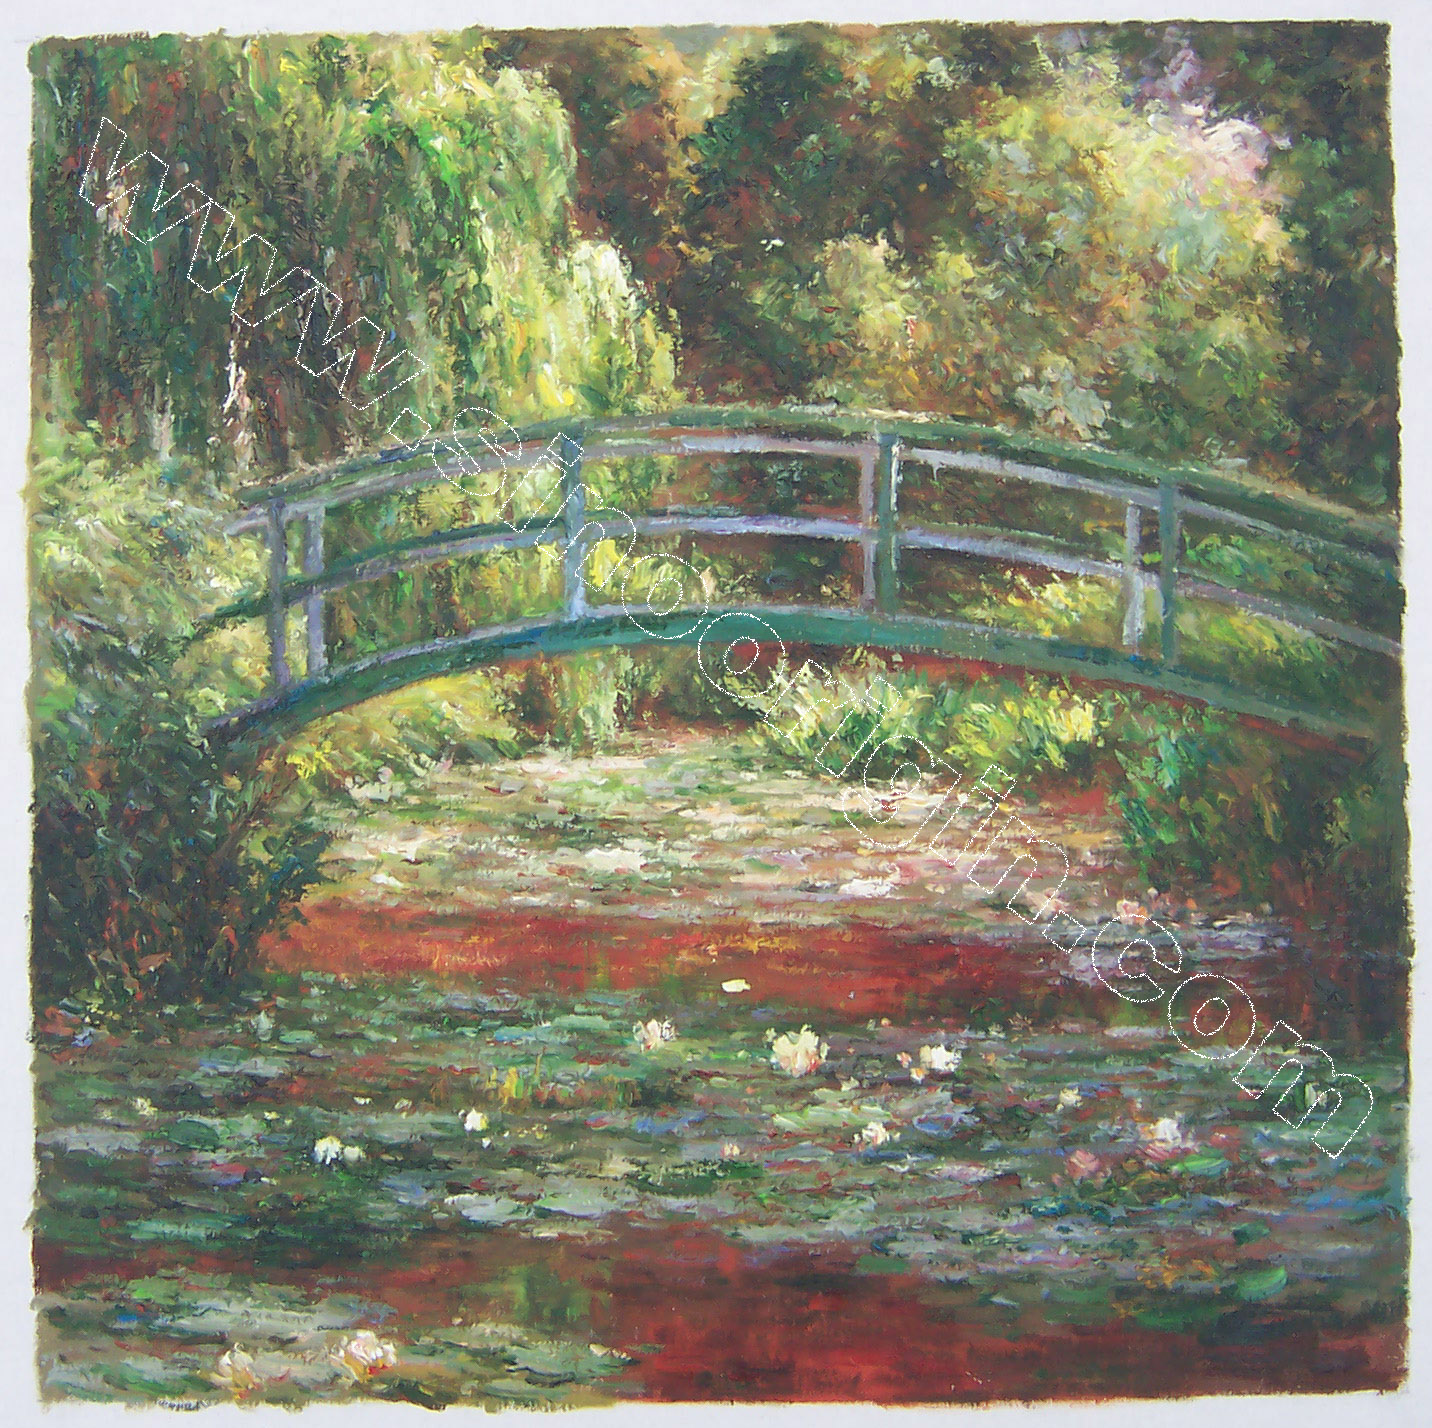 Claude monet oil painting for Monet paintings images